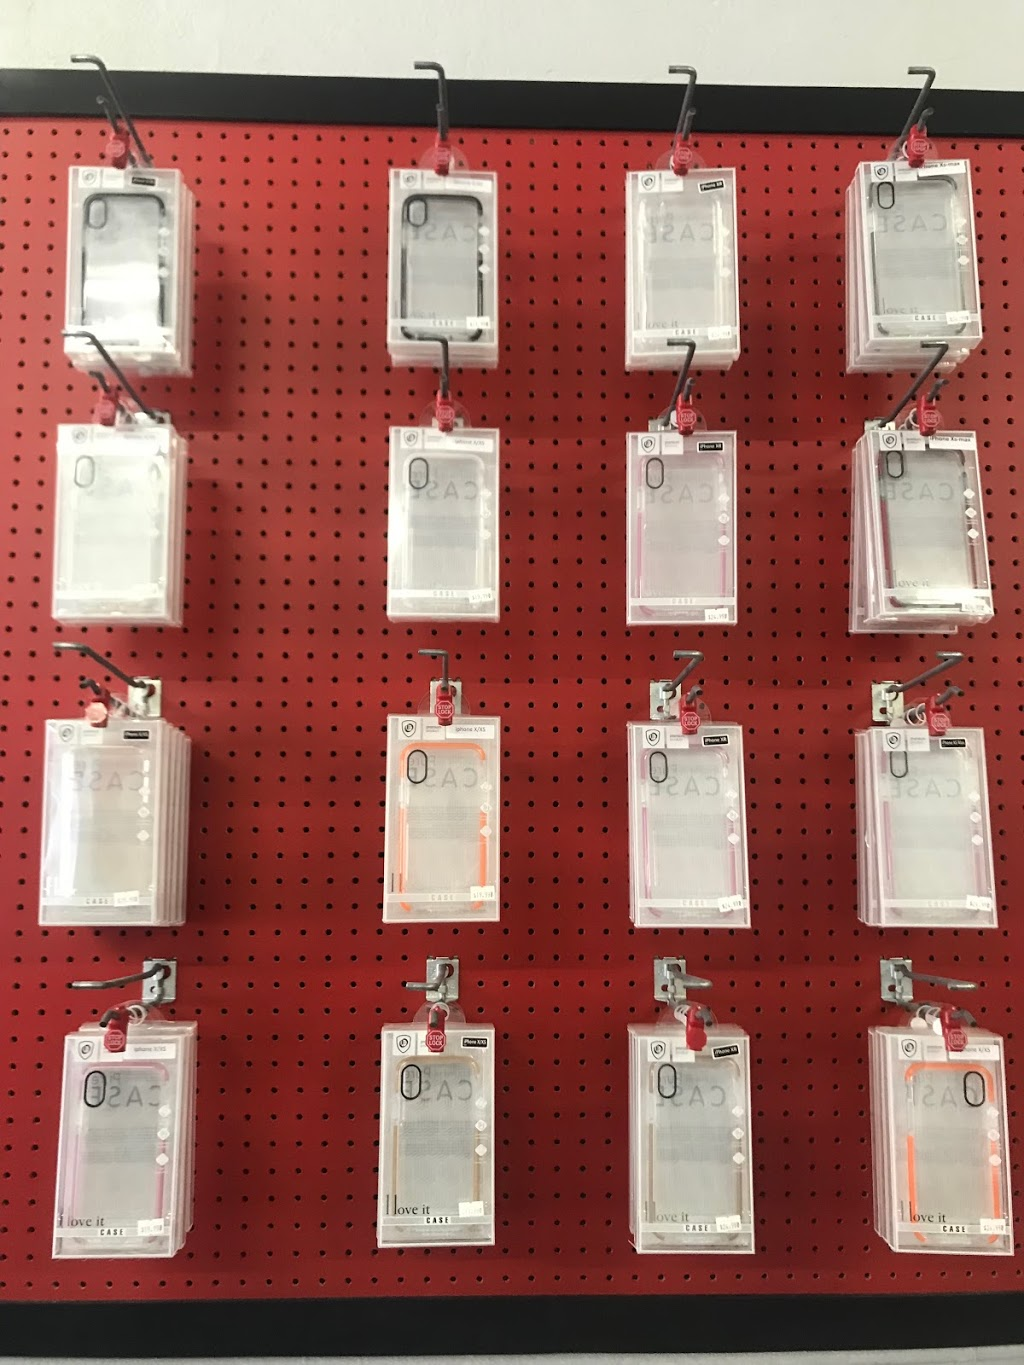 iPhone Repair Whittier | store | 14087 Lambert Rd, Whittier, CA 90605, USA | 5626321616 OR +1 562-632-1616